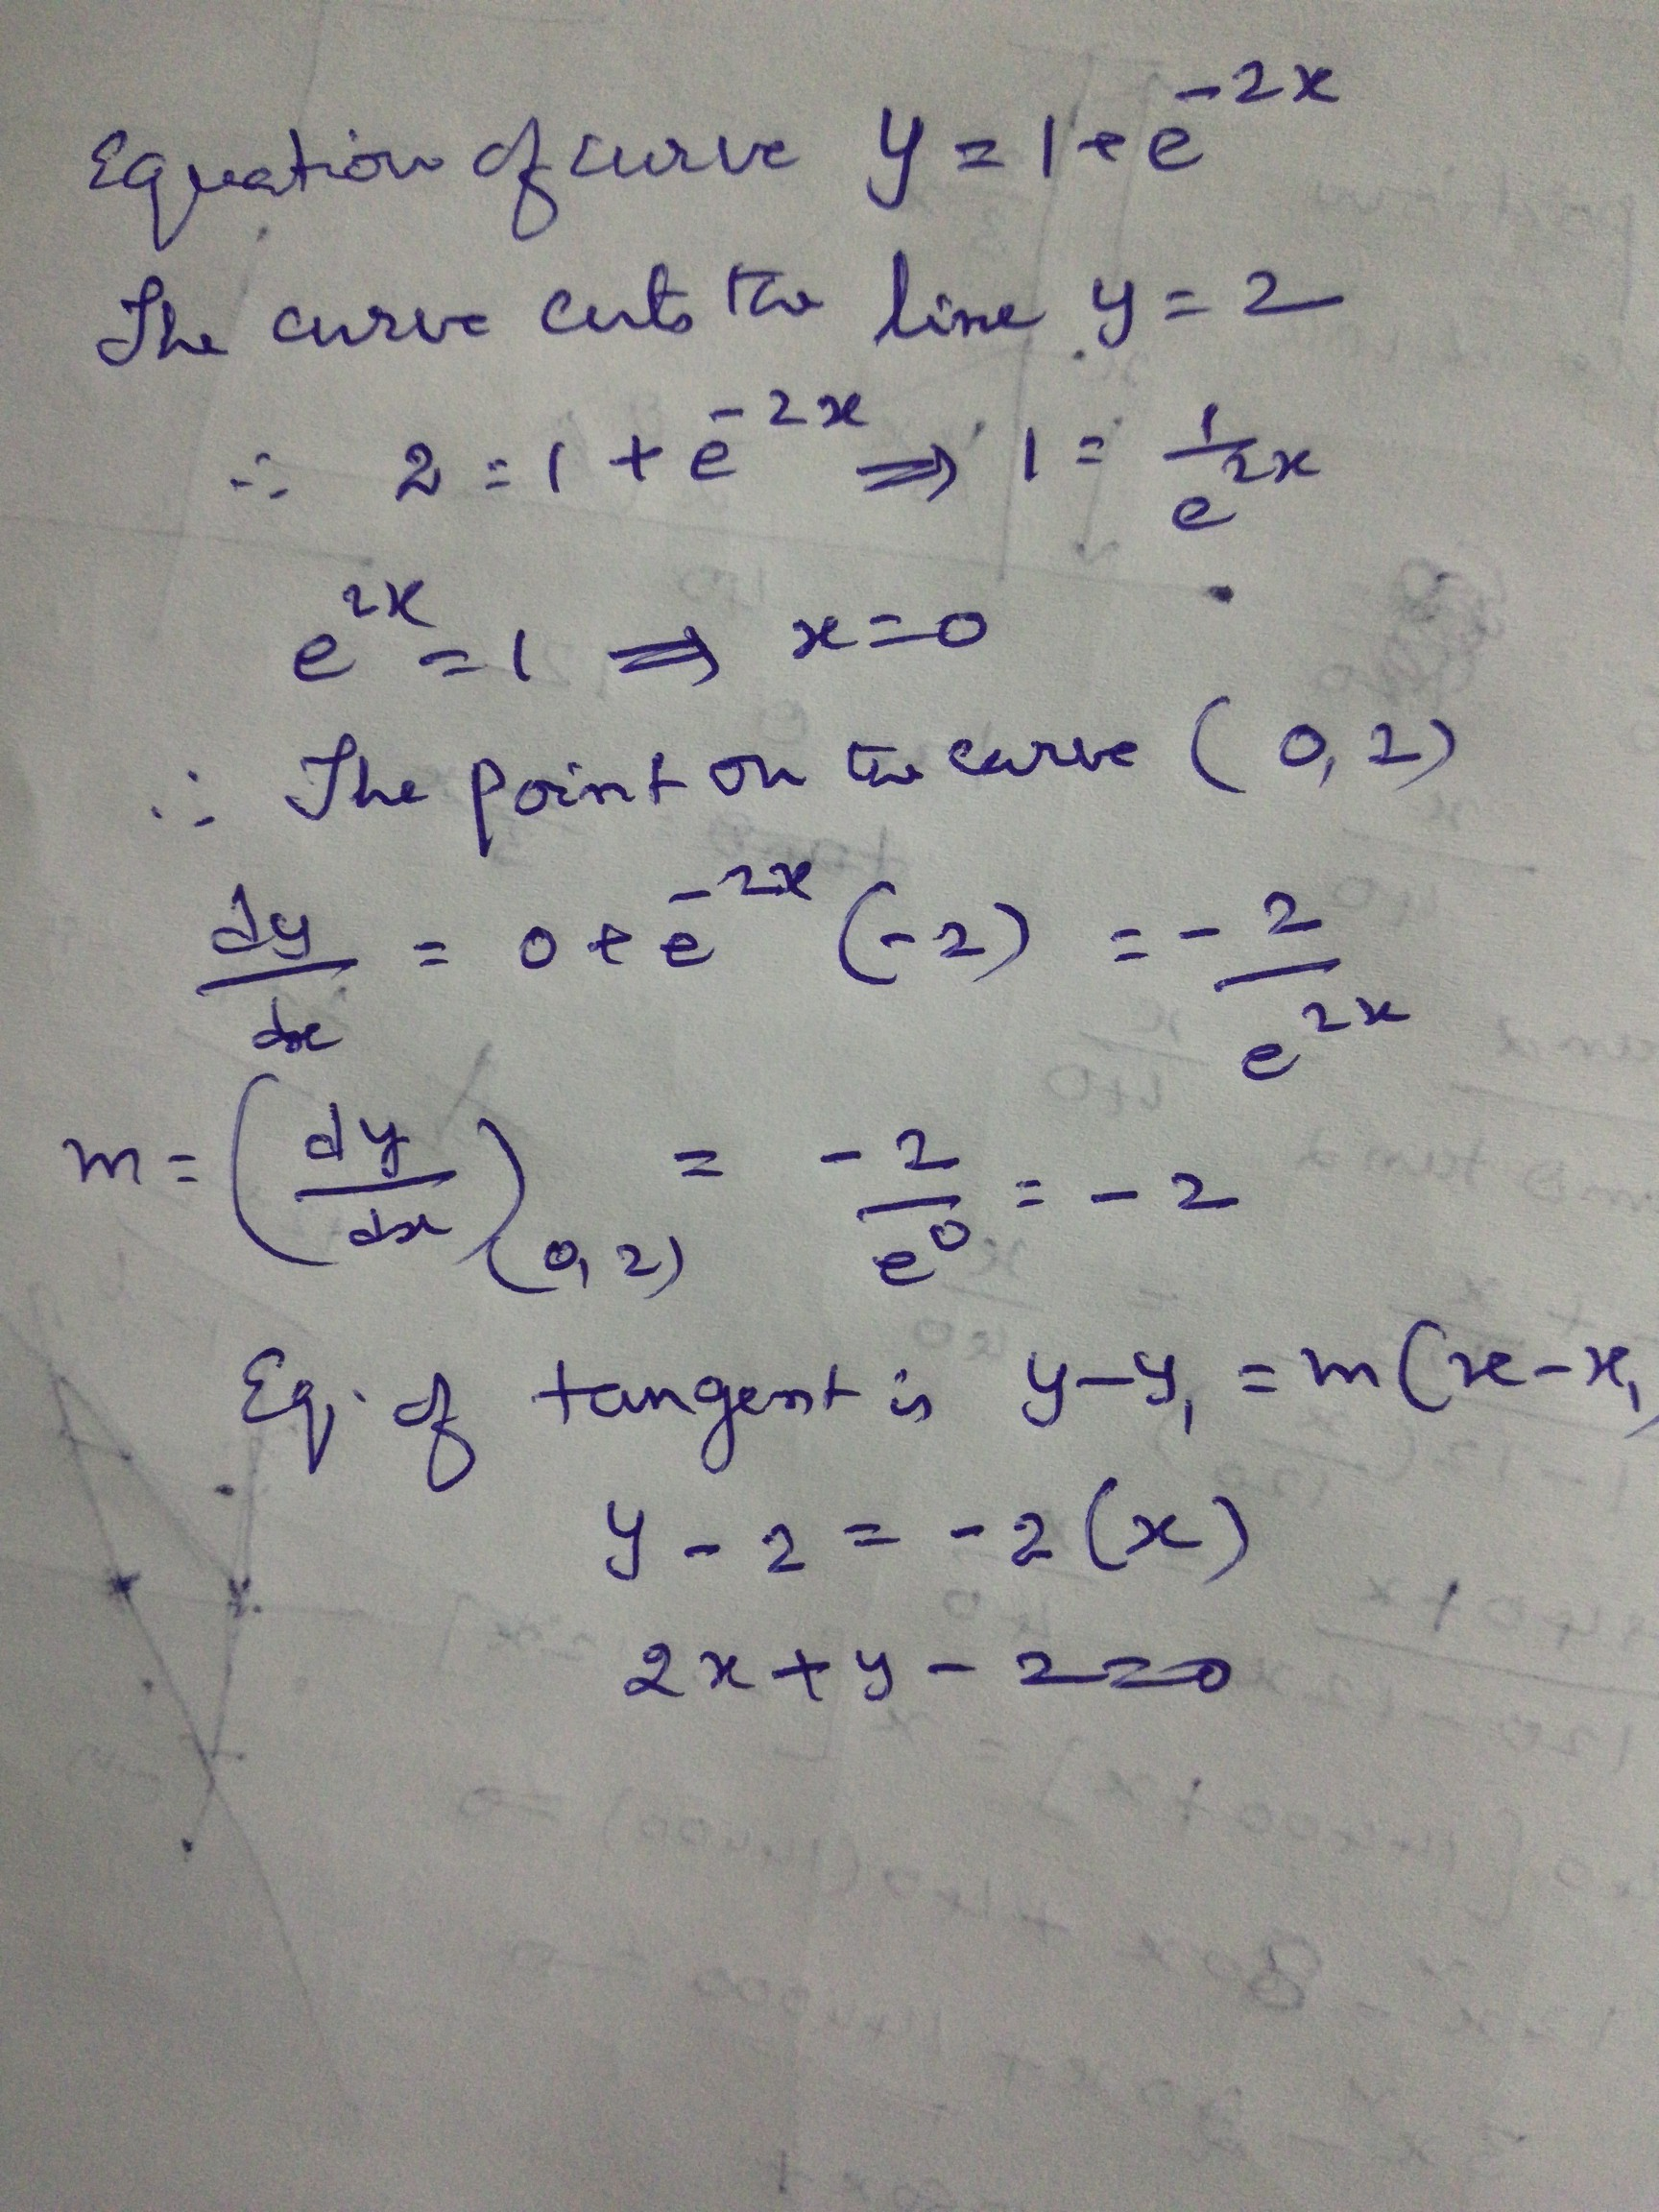 Find An Equation Of The Tangent Line To Curve At Point 1 E